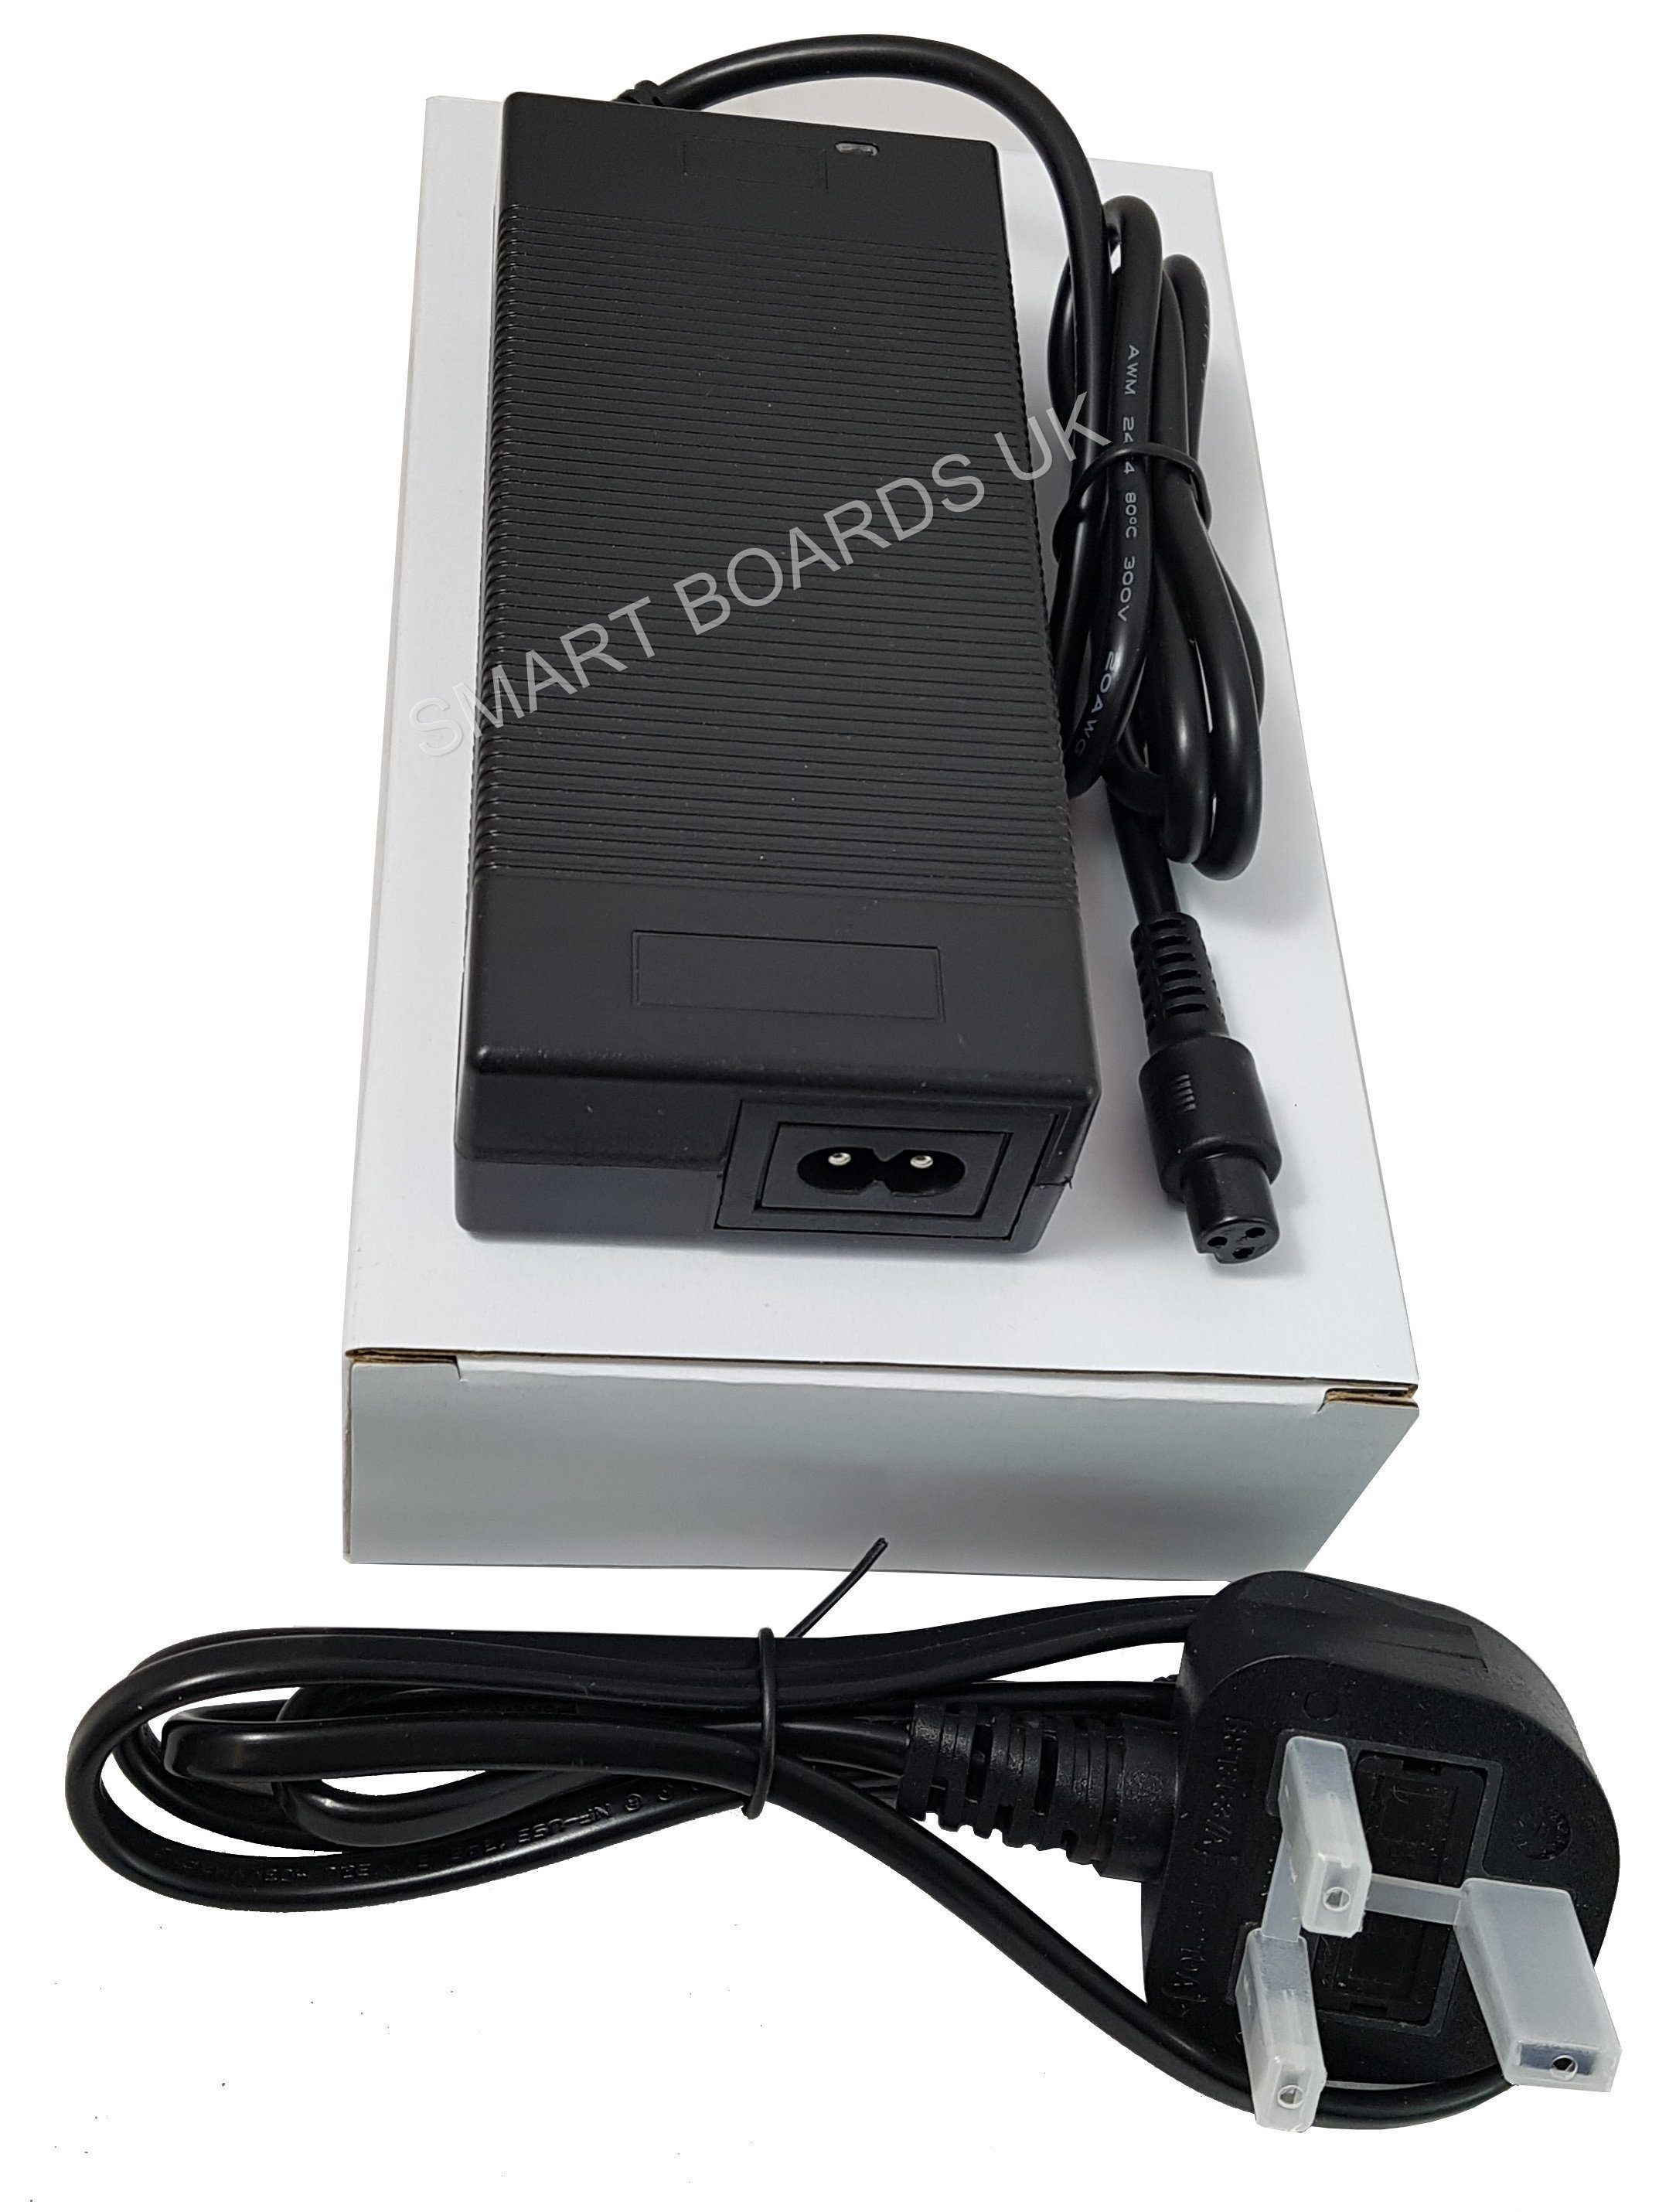 BATTERY CHARGER (42V 2A) STANDARD UK FOR ALL MODELS-Smart Boards UK